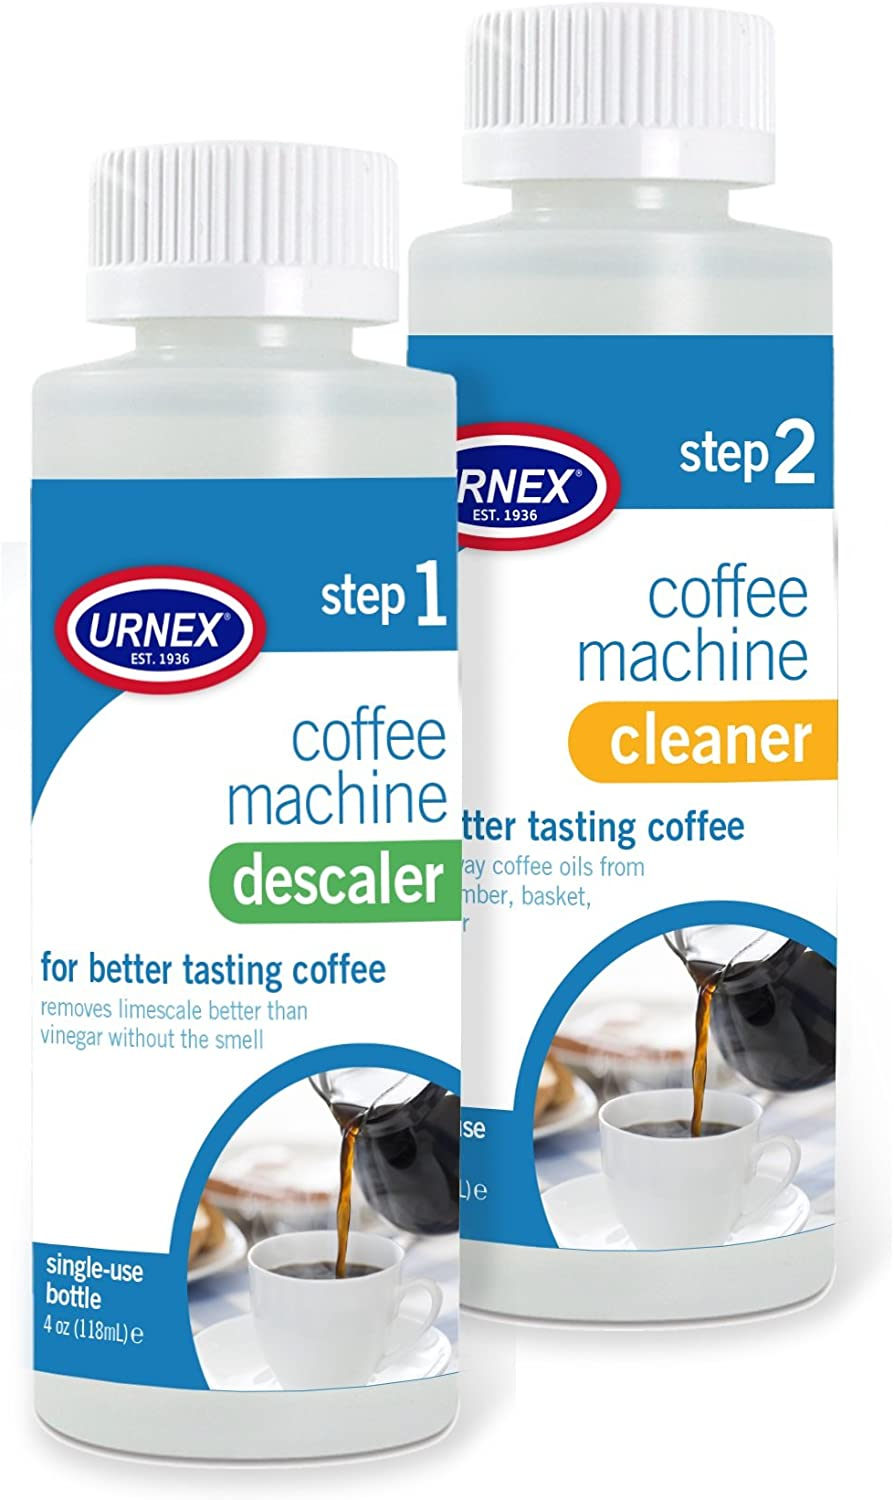 Urnex Coffee Maker Cleaner and Descaler Kit Bottl 2 Use Purchase Single - At the price of surprise